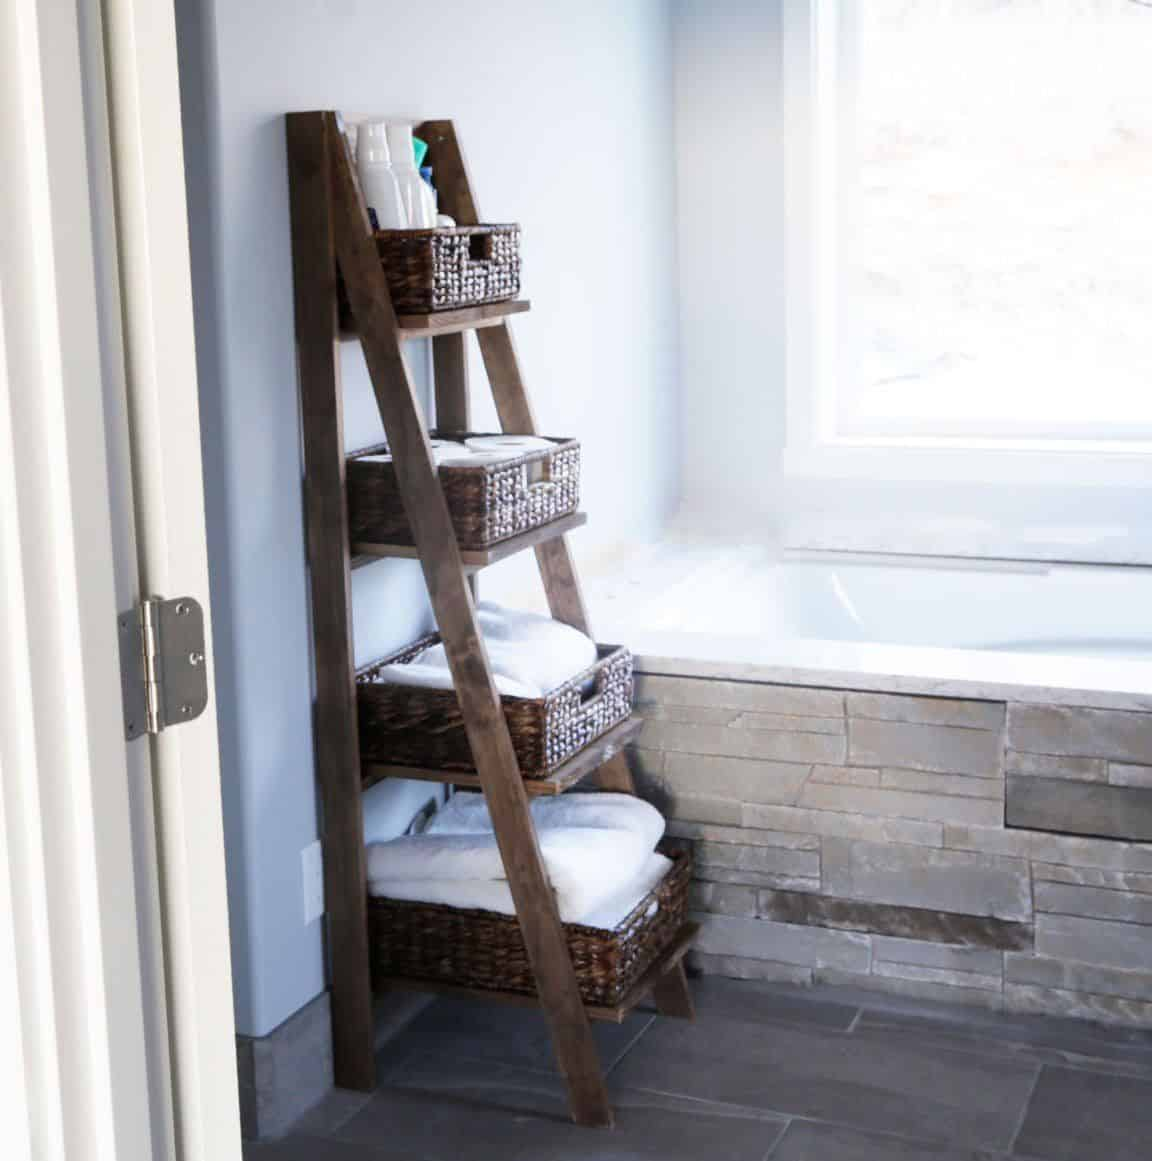 Bathroom Storage Ladder Knockoffdecor Com